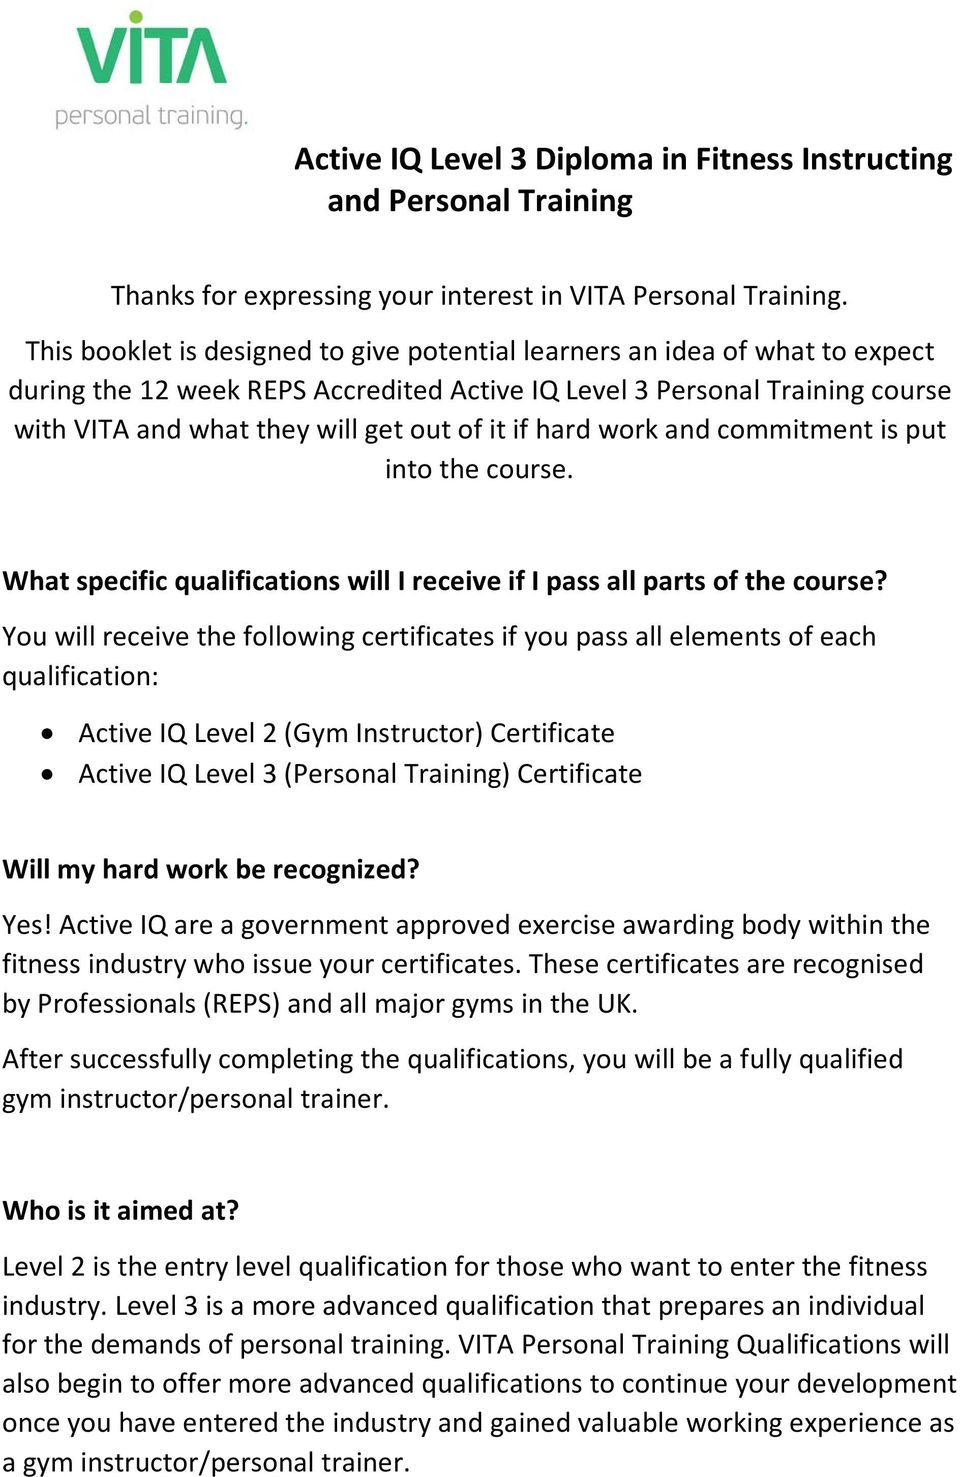 Active Iq Level 3 Diploma In Fitness Instructing And Personal